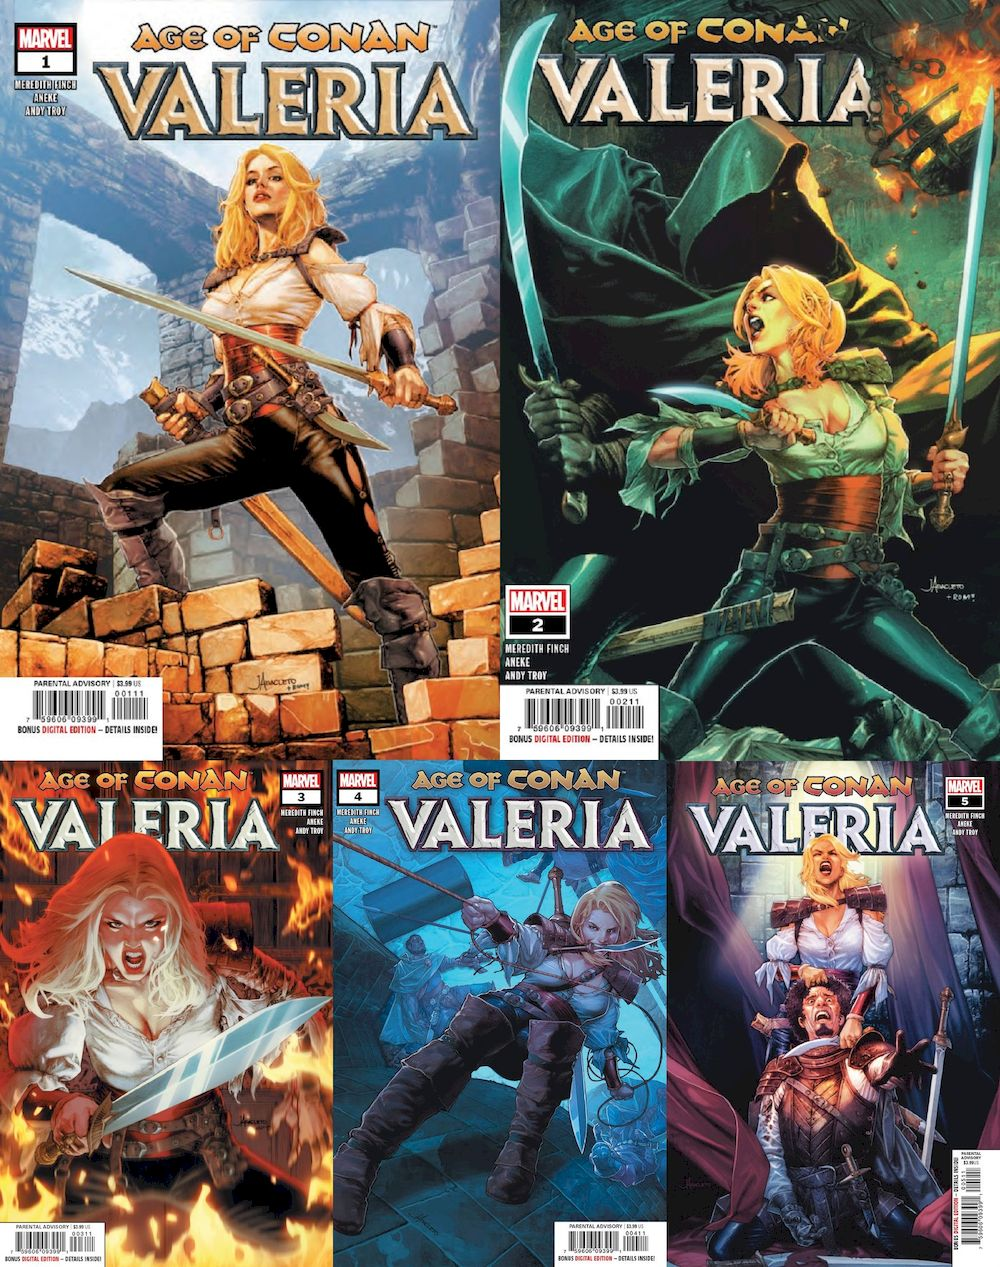 AGE OF CONAN VALERIA #1 - #5 (OF 5) SET